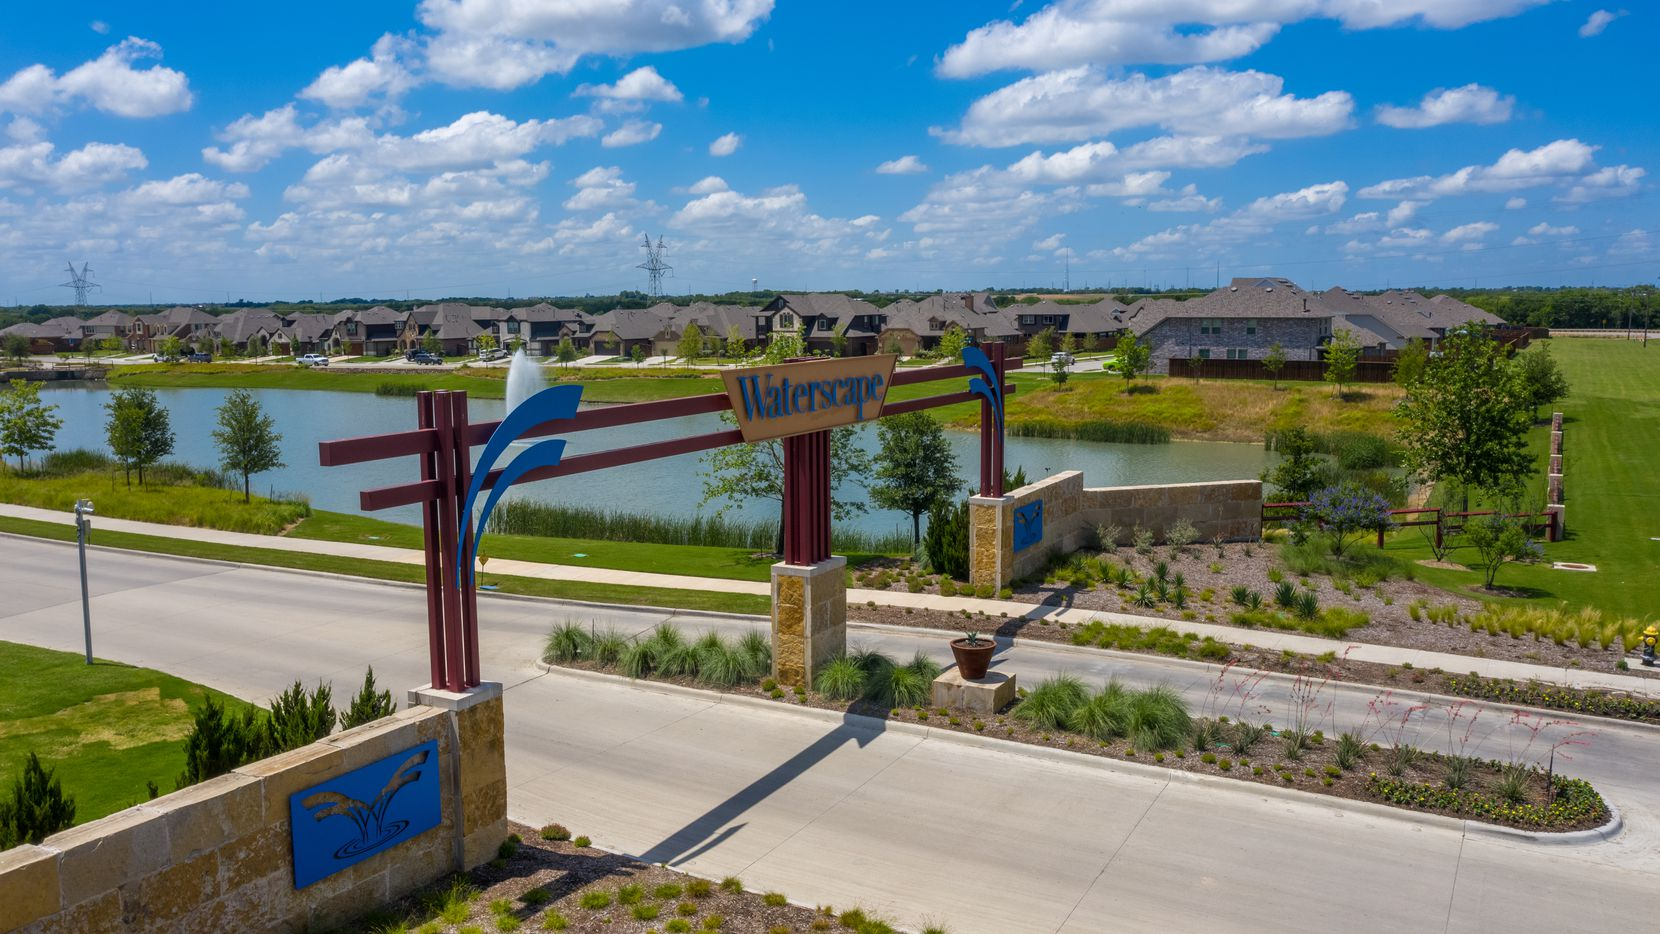 Huffines Communities' Waterscape development is already home to about 250 families.